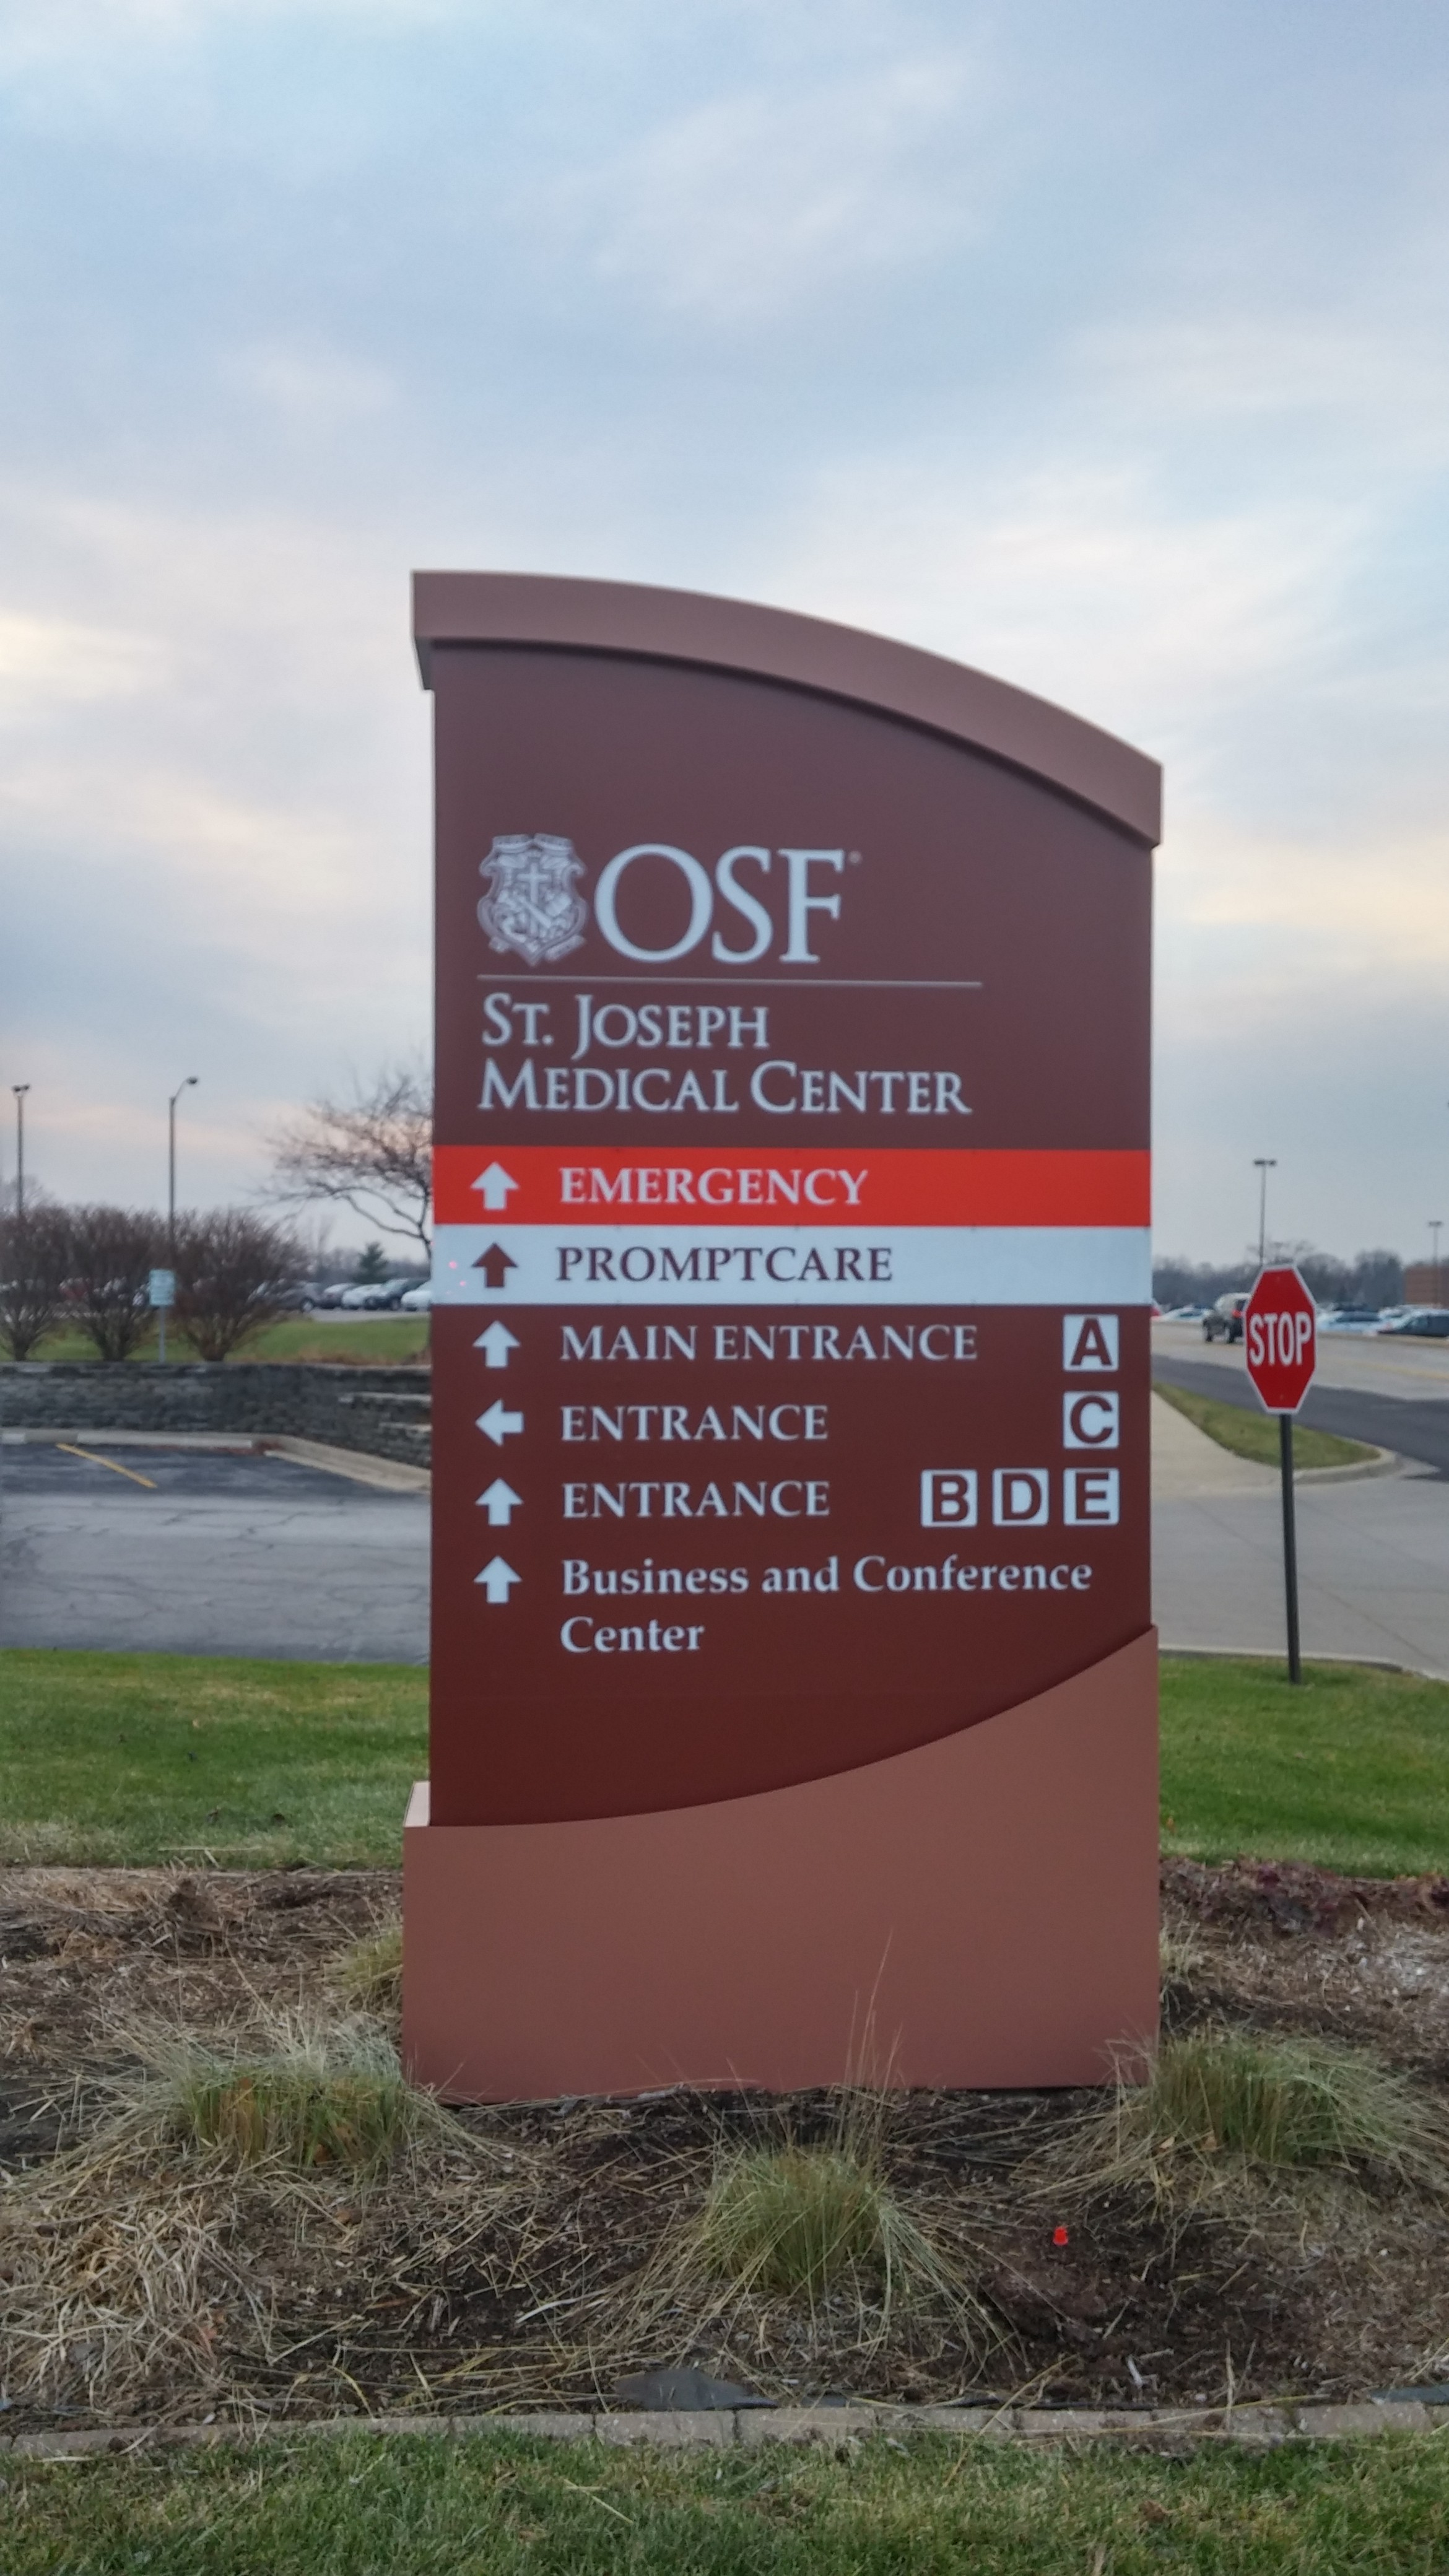 OSF St. Joseph Medical Center